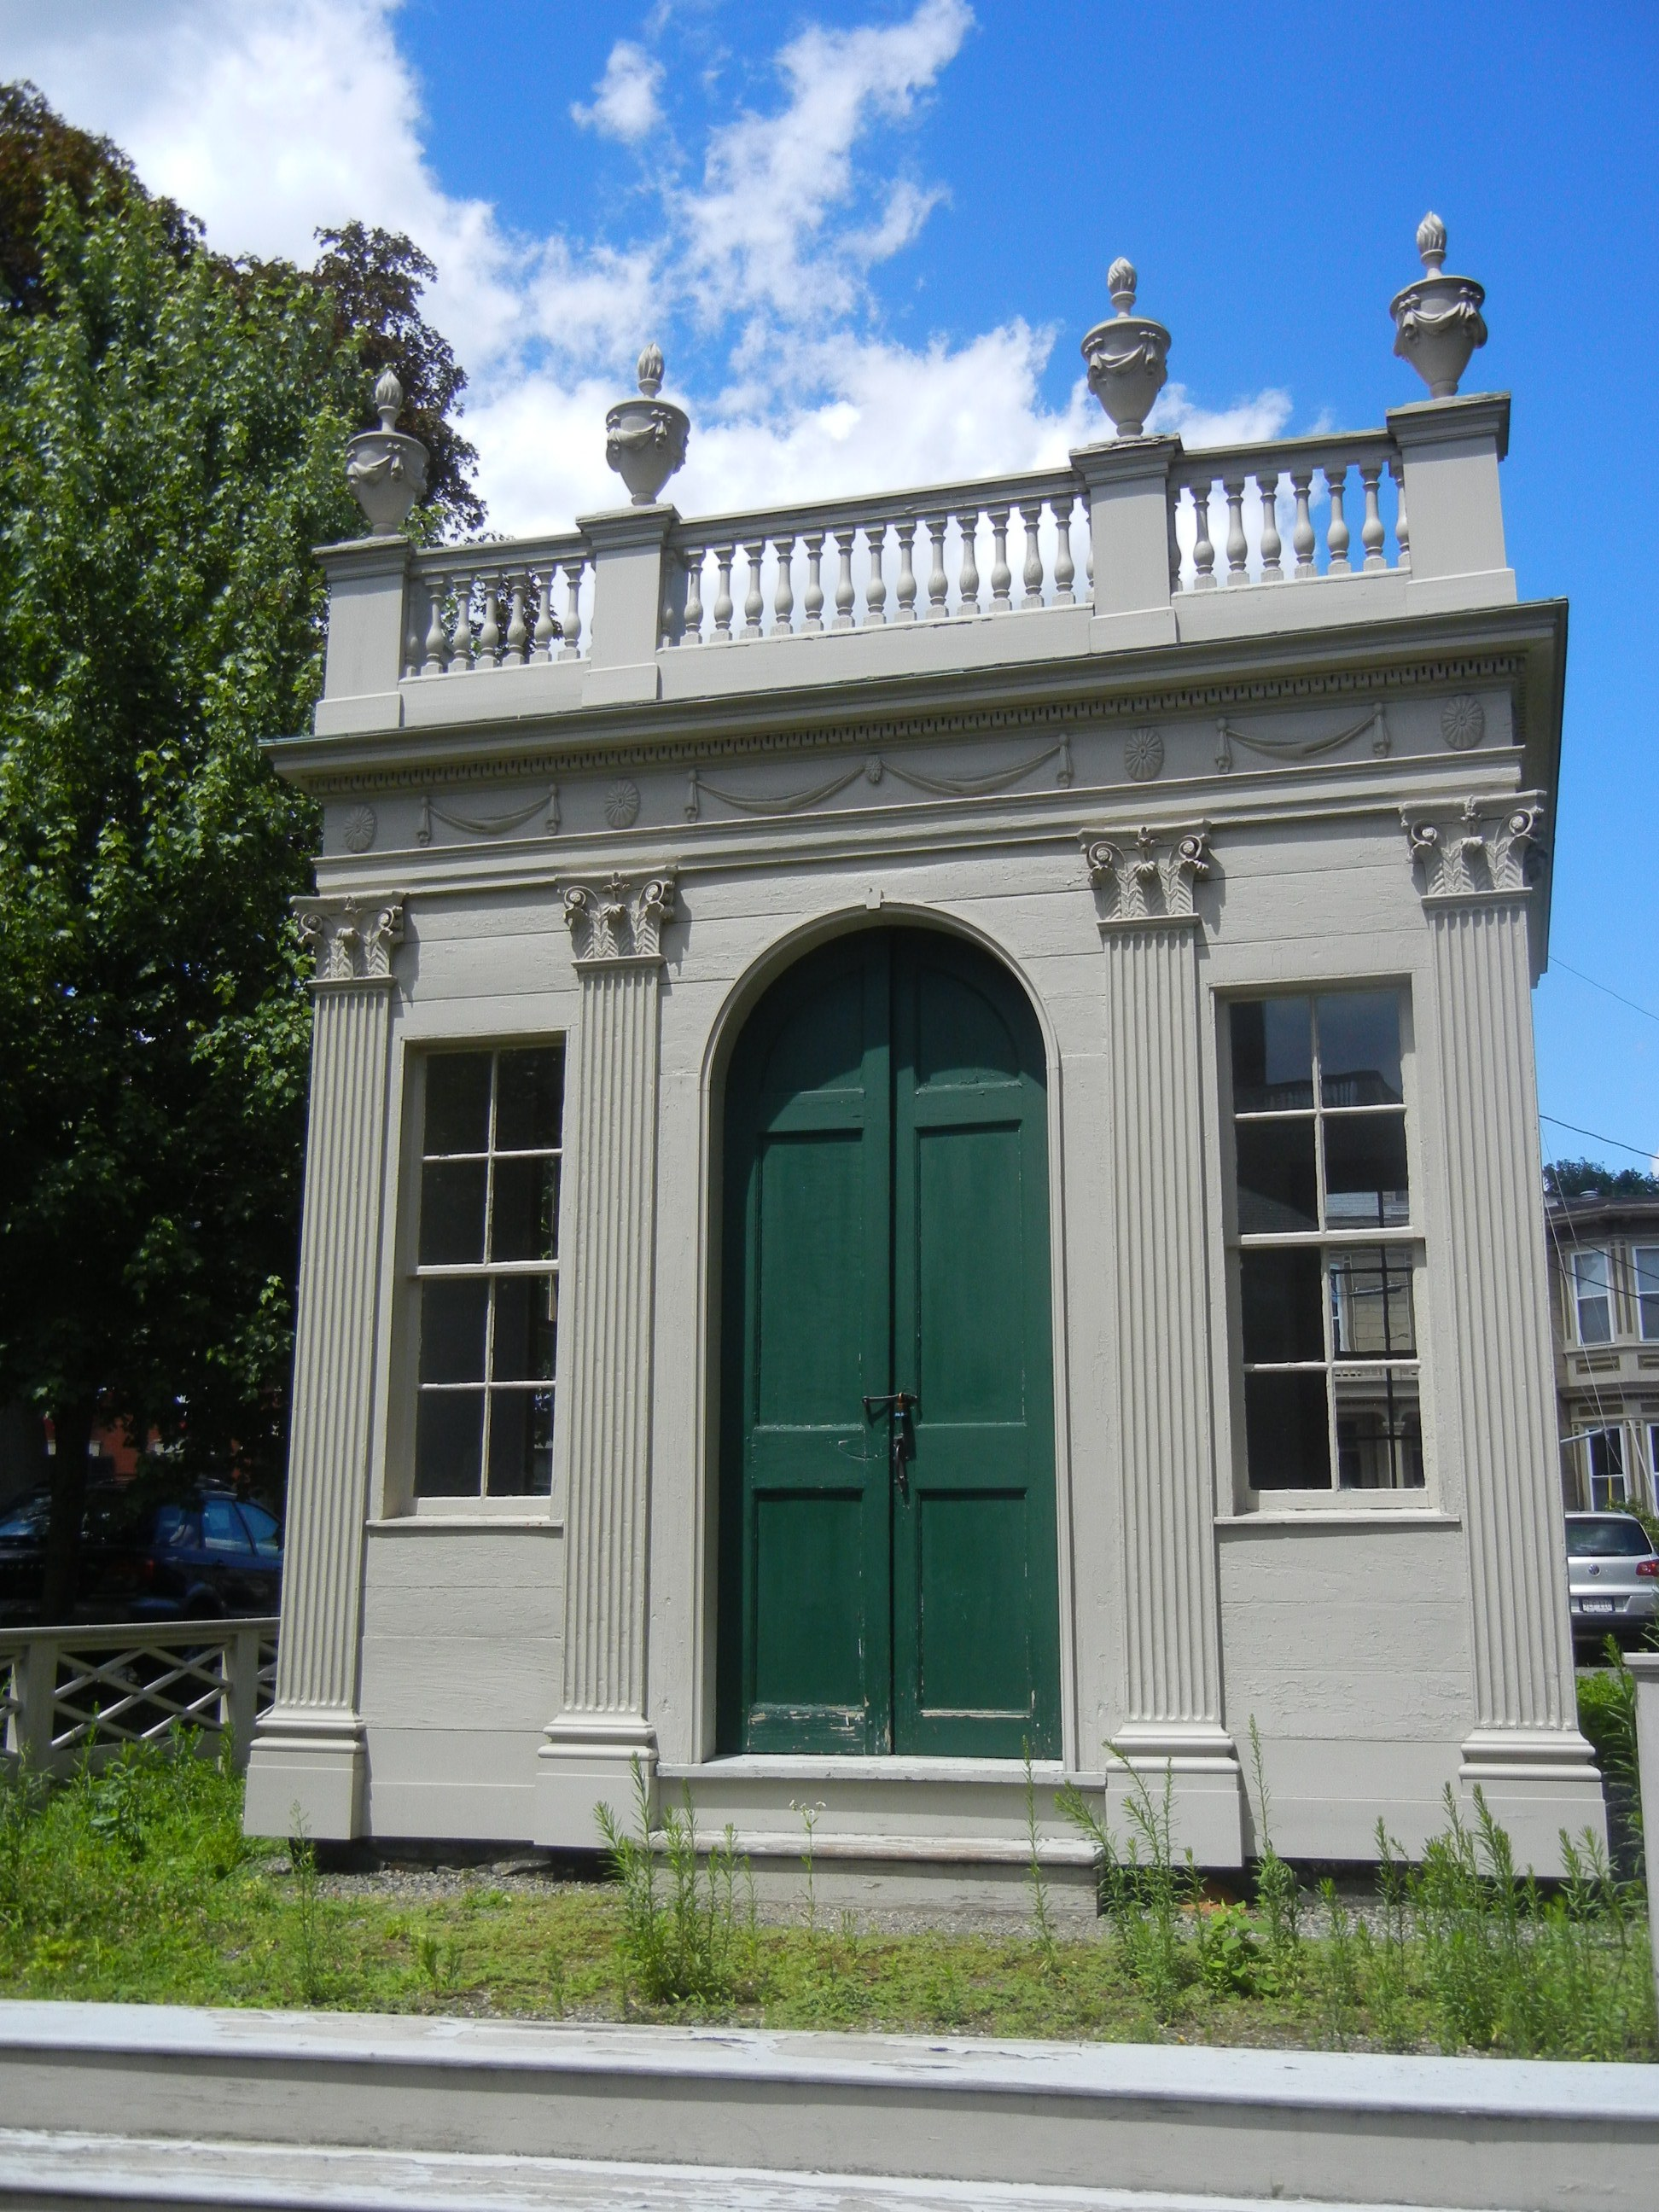 speaking of summer houses the ultimate the samuel mcintire designed derby beebe summer house in the center of the peabody essex museum campus - Greek Revival Cottage